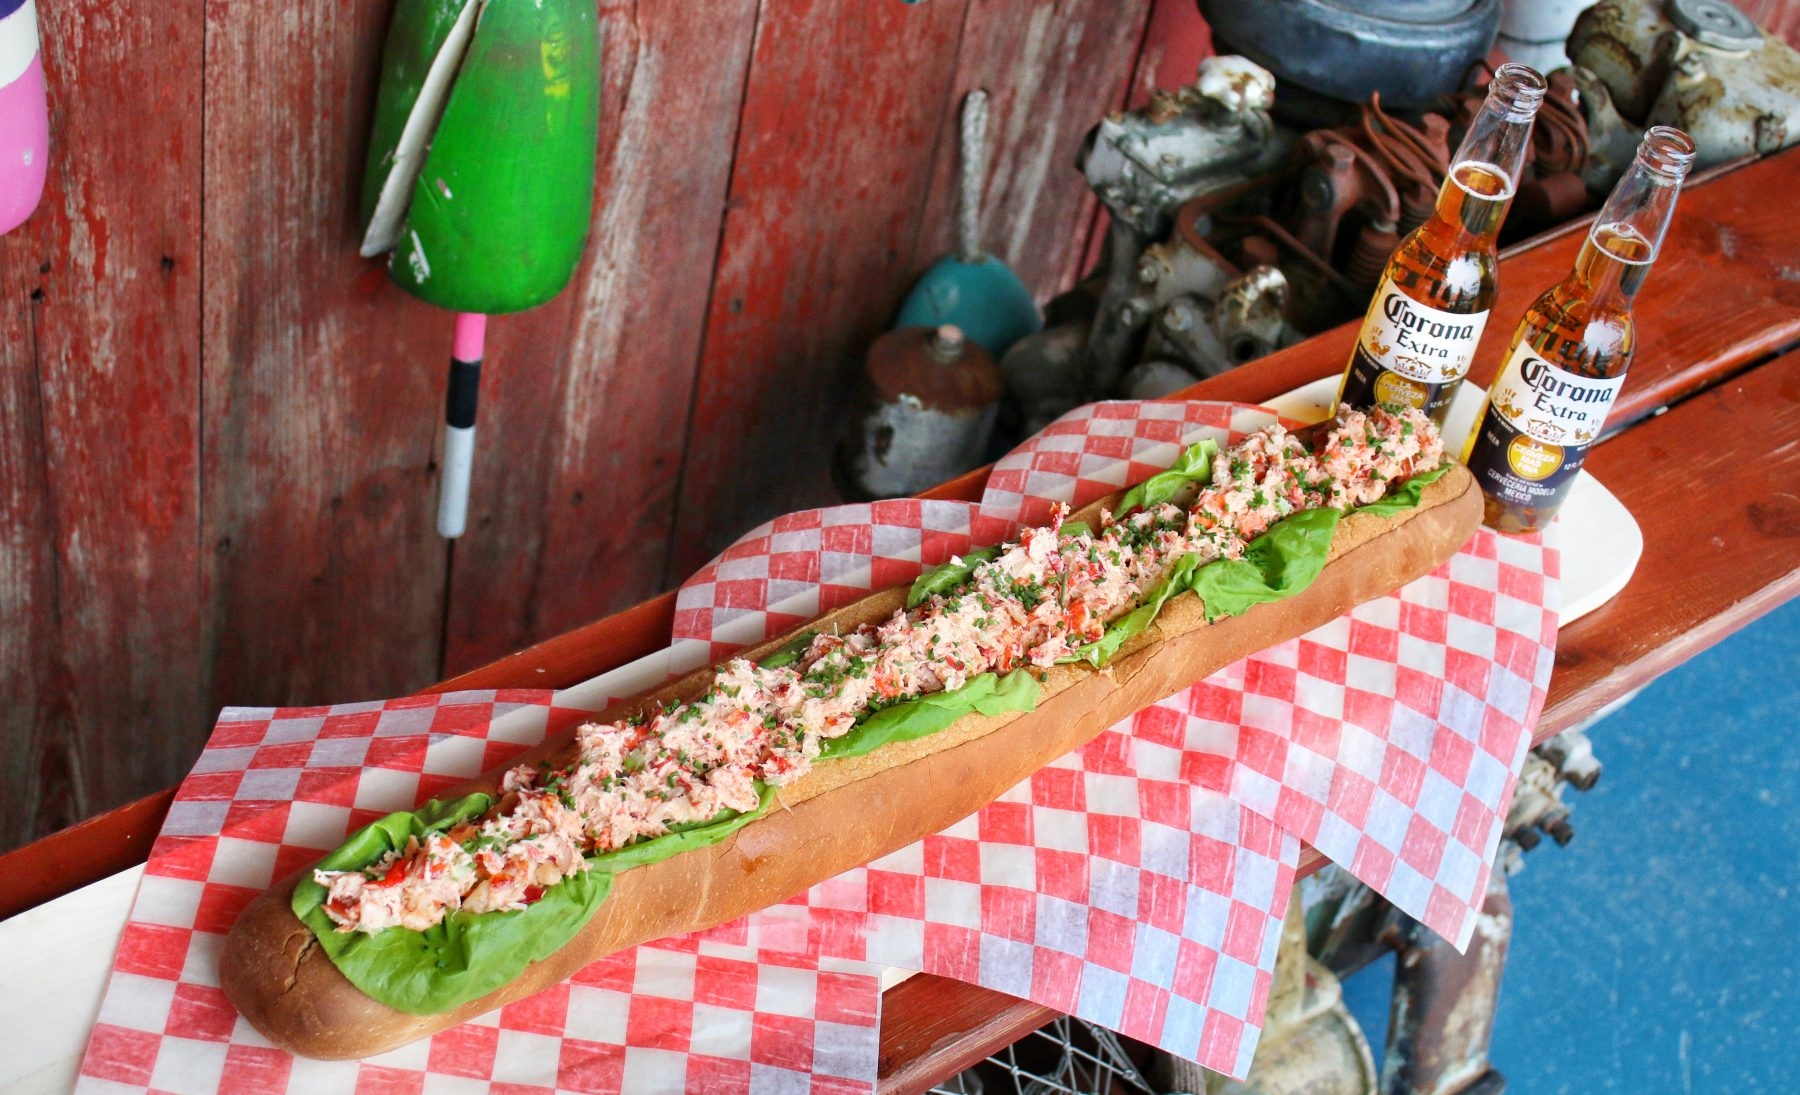 Kick Off Boat Season with Lobster Rolls Aboard North River Lobster Company's Floating Lobster Shack